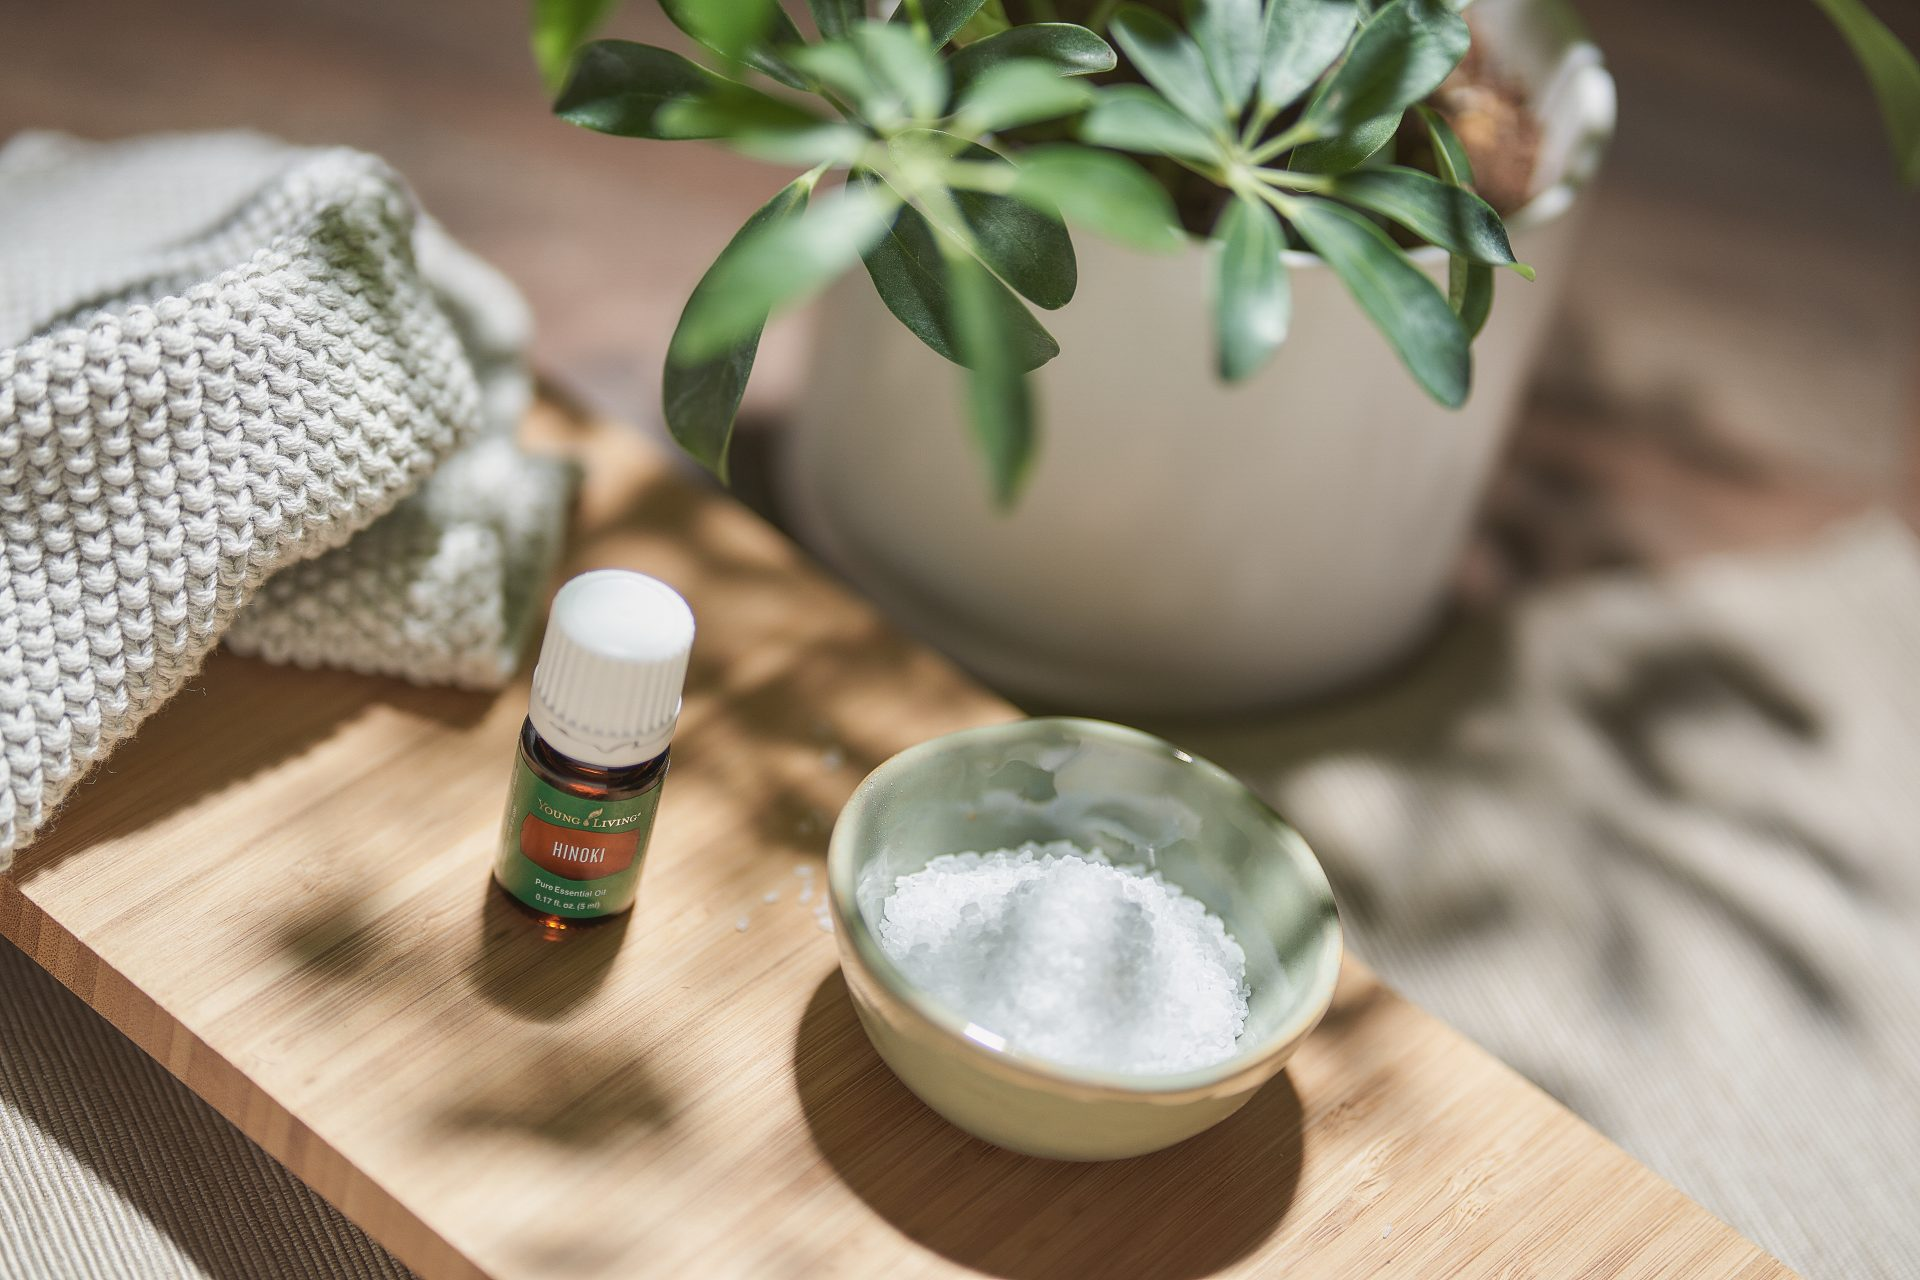 Hinoki Essential Oil - Young Living Essential Oils